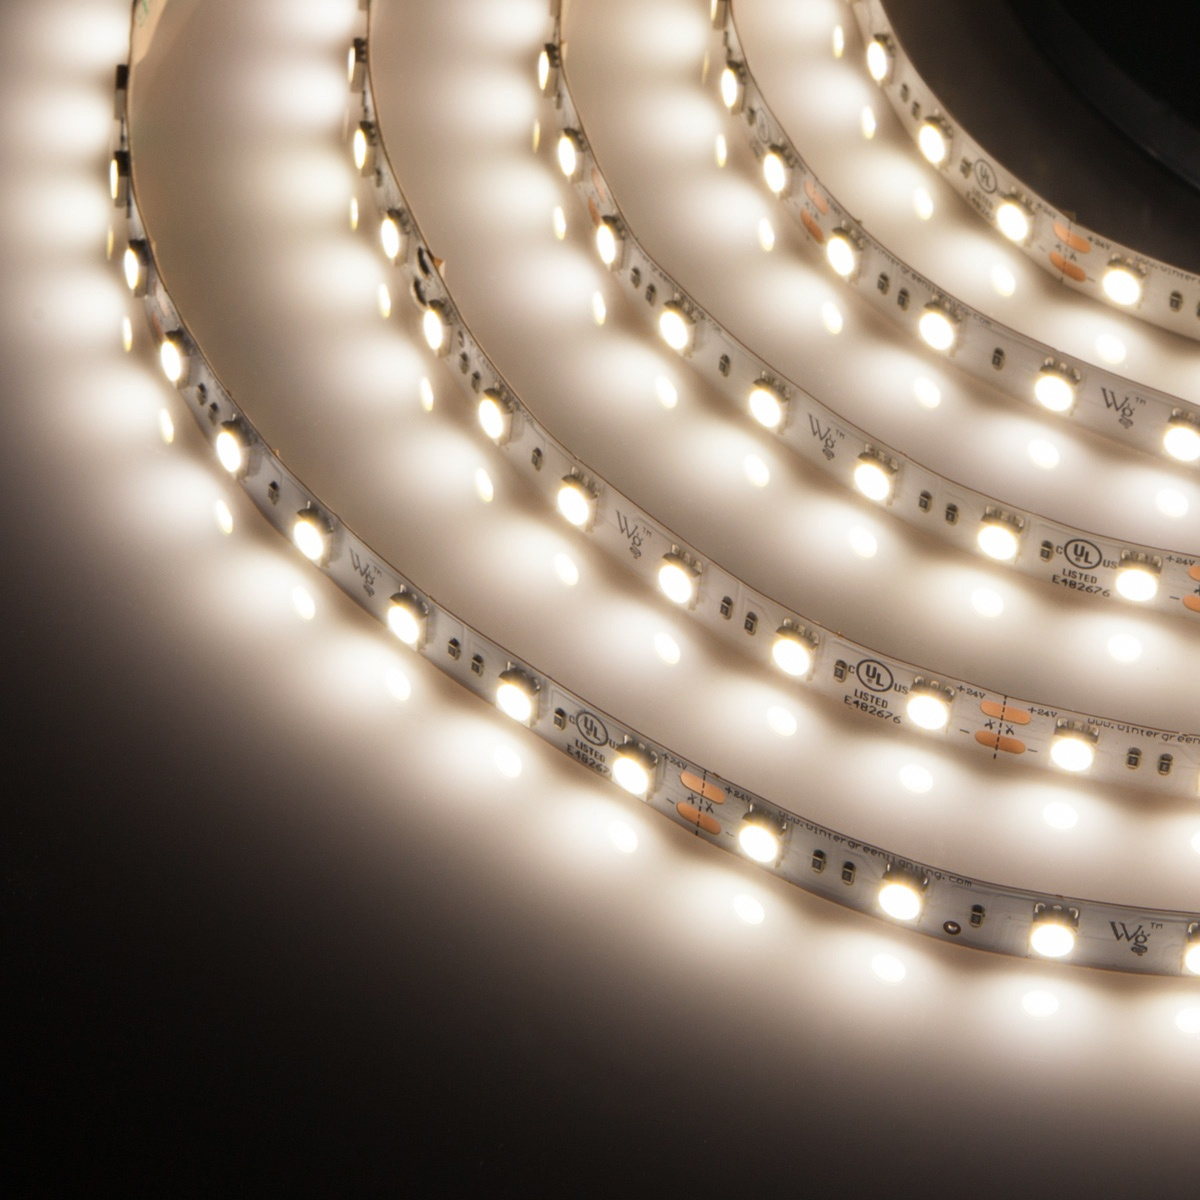 pure white 24v led strip light. Black Bedroom Furniture Sets. Home Design Ideas